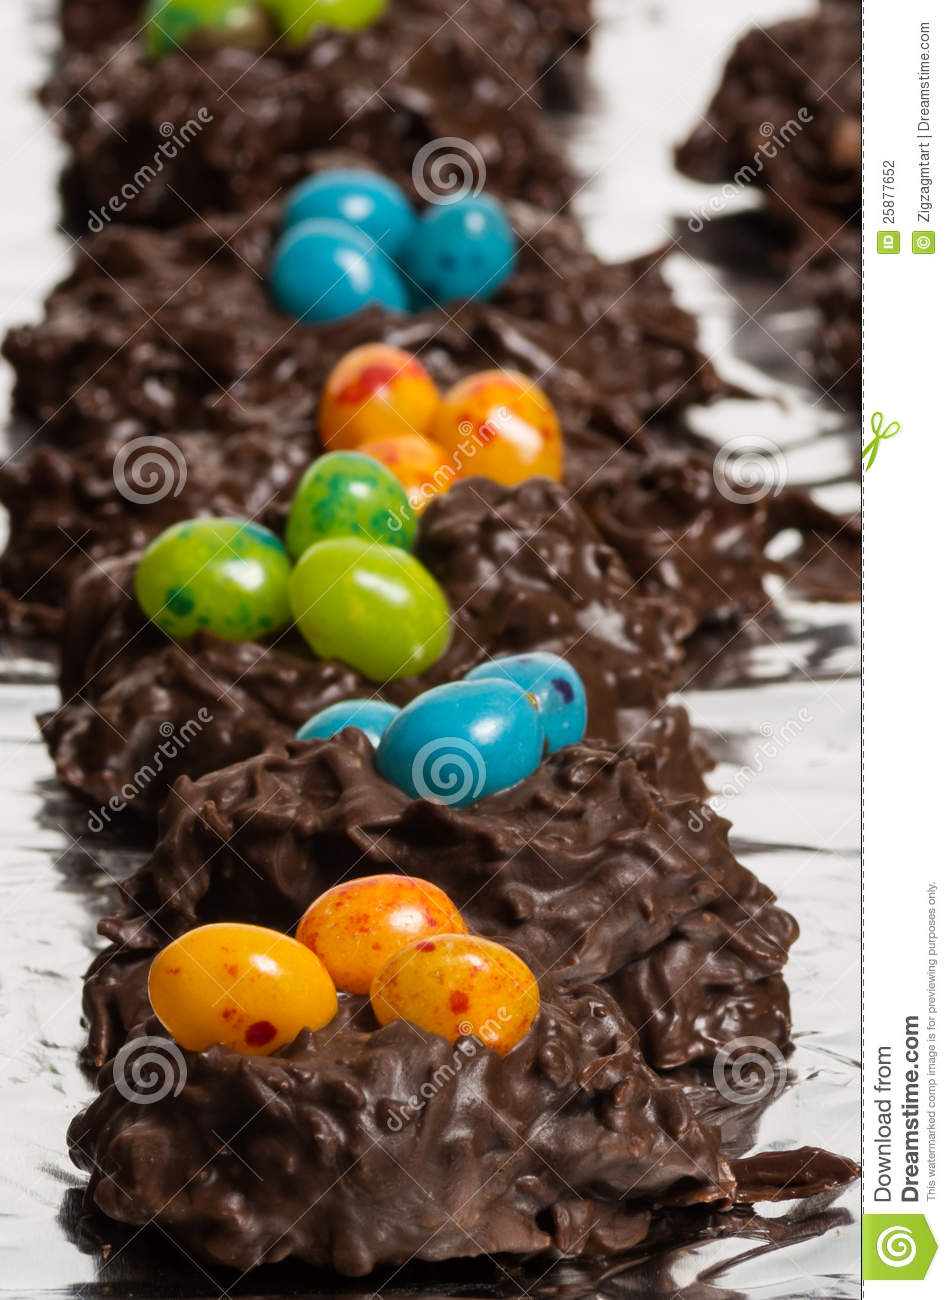 More similar stock images of ` Chocolate bird nests with jelly beans `